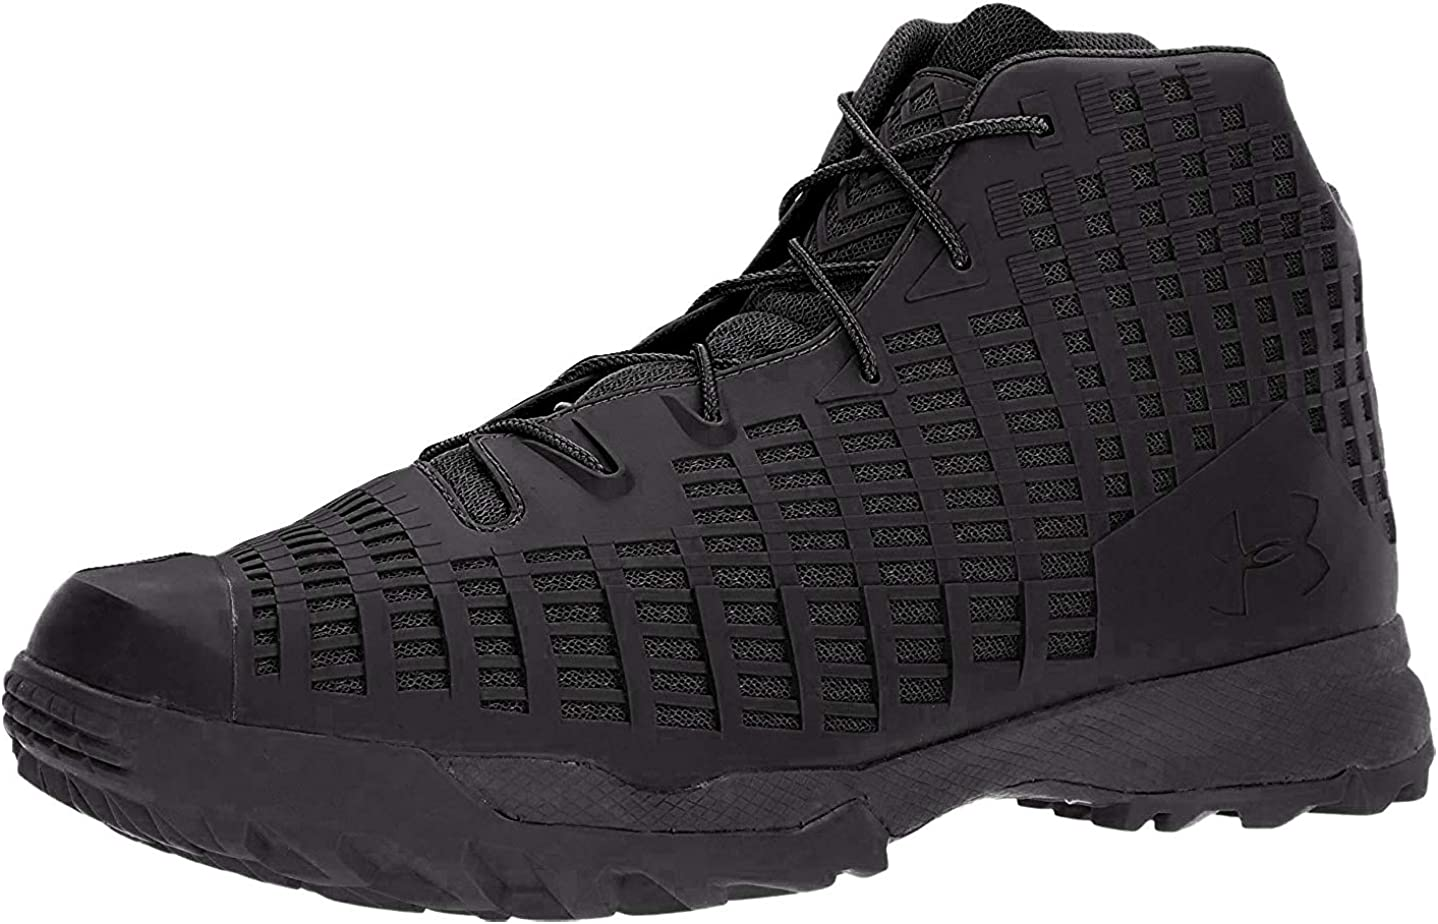 Under Armour Bombing new work Men's Acquisition Max 56% OFF Military Boot Tactical and